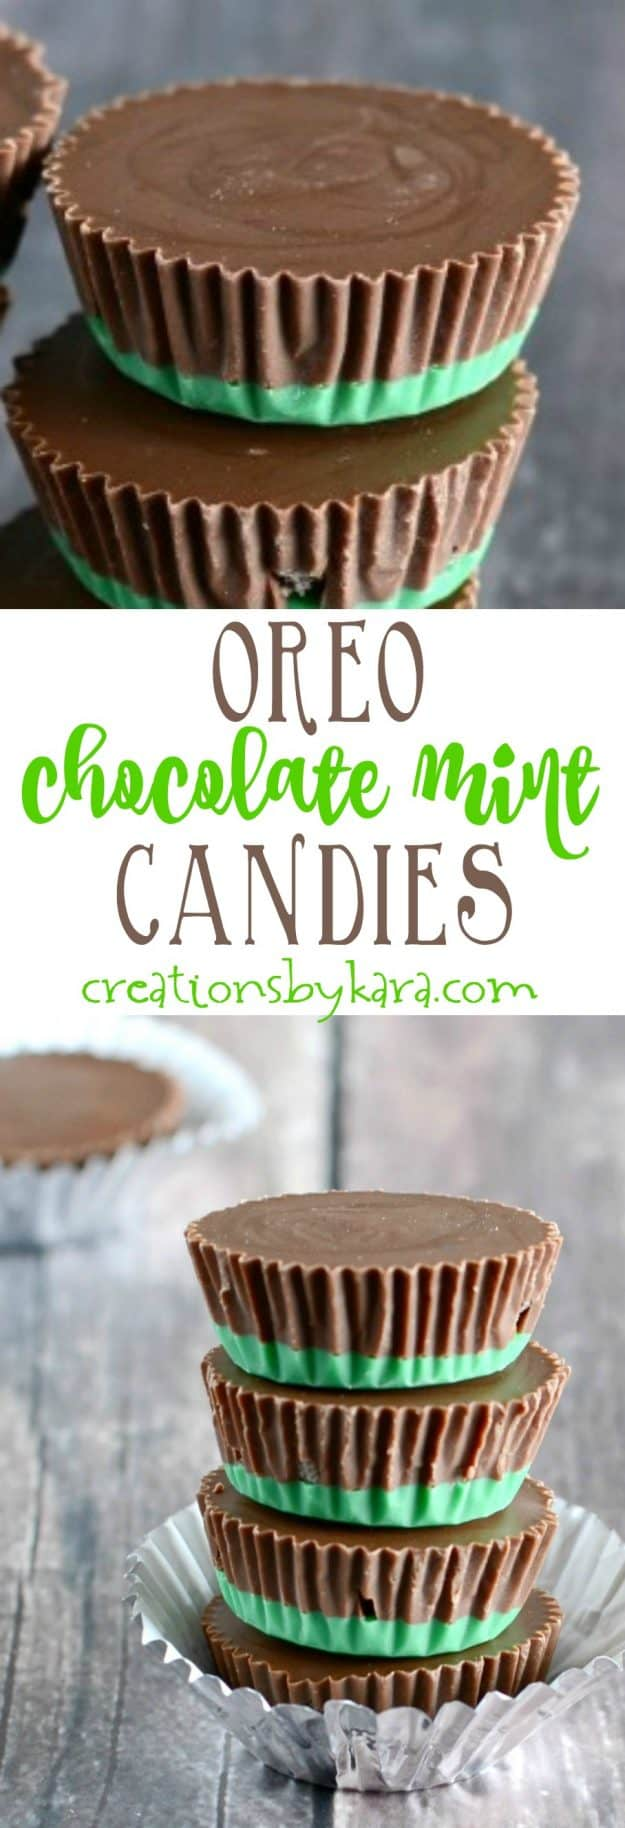 oreo chocolate mint candies recipe collage